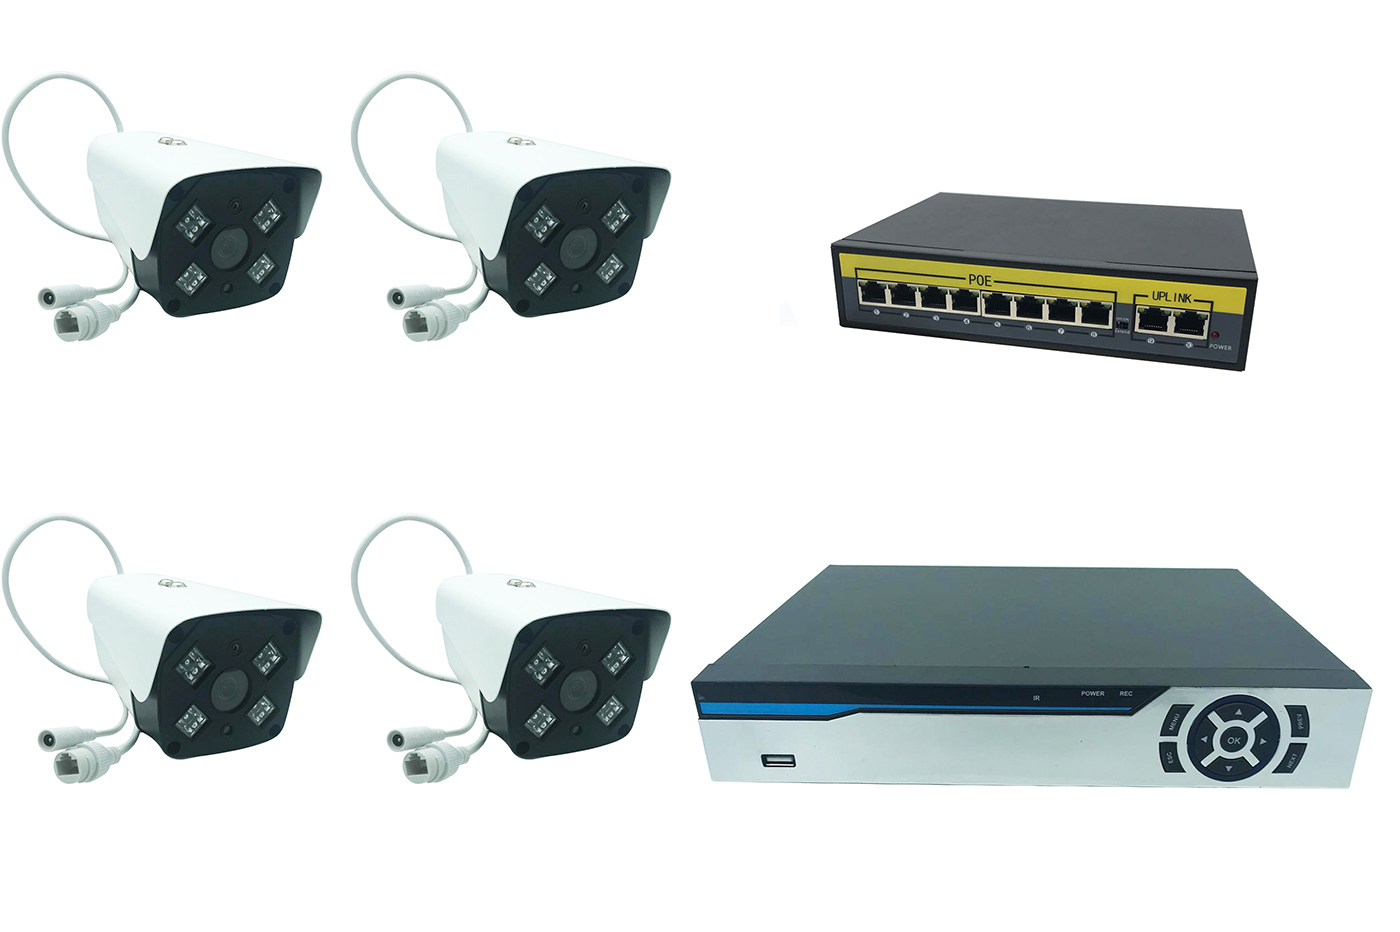 Kit videosorveglianza dvr 4ch nvr ahd 4 telecamere IP led array switch Poe 8port